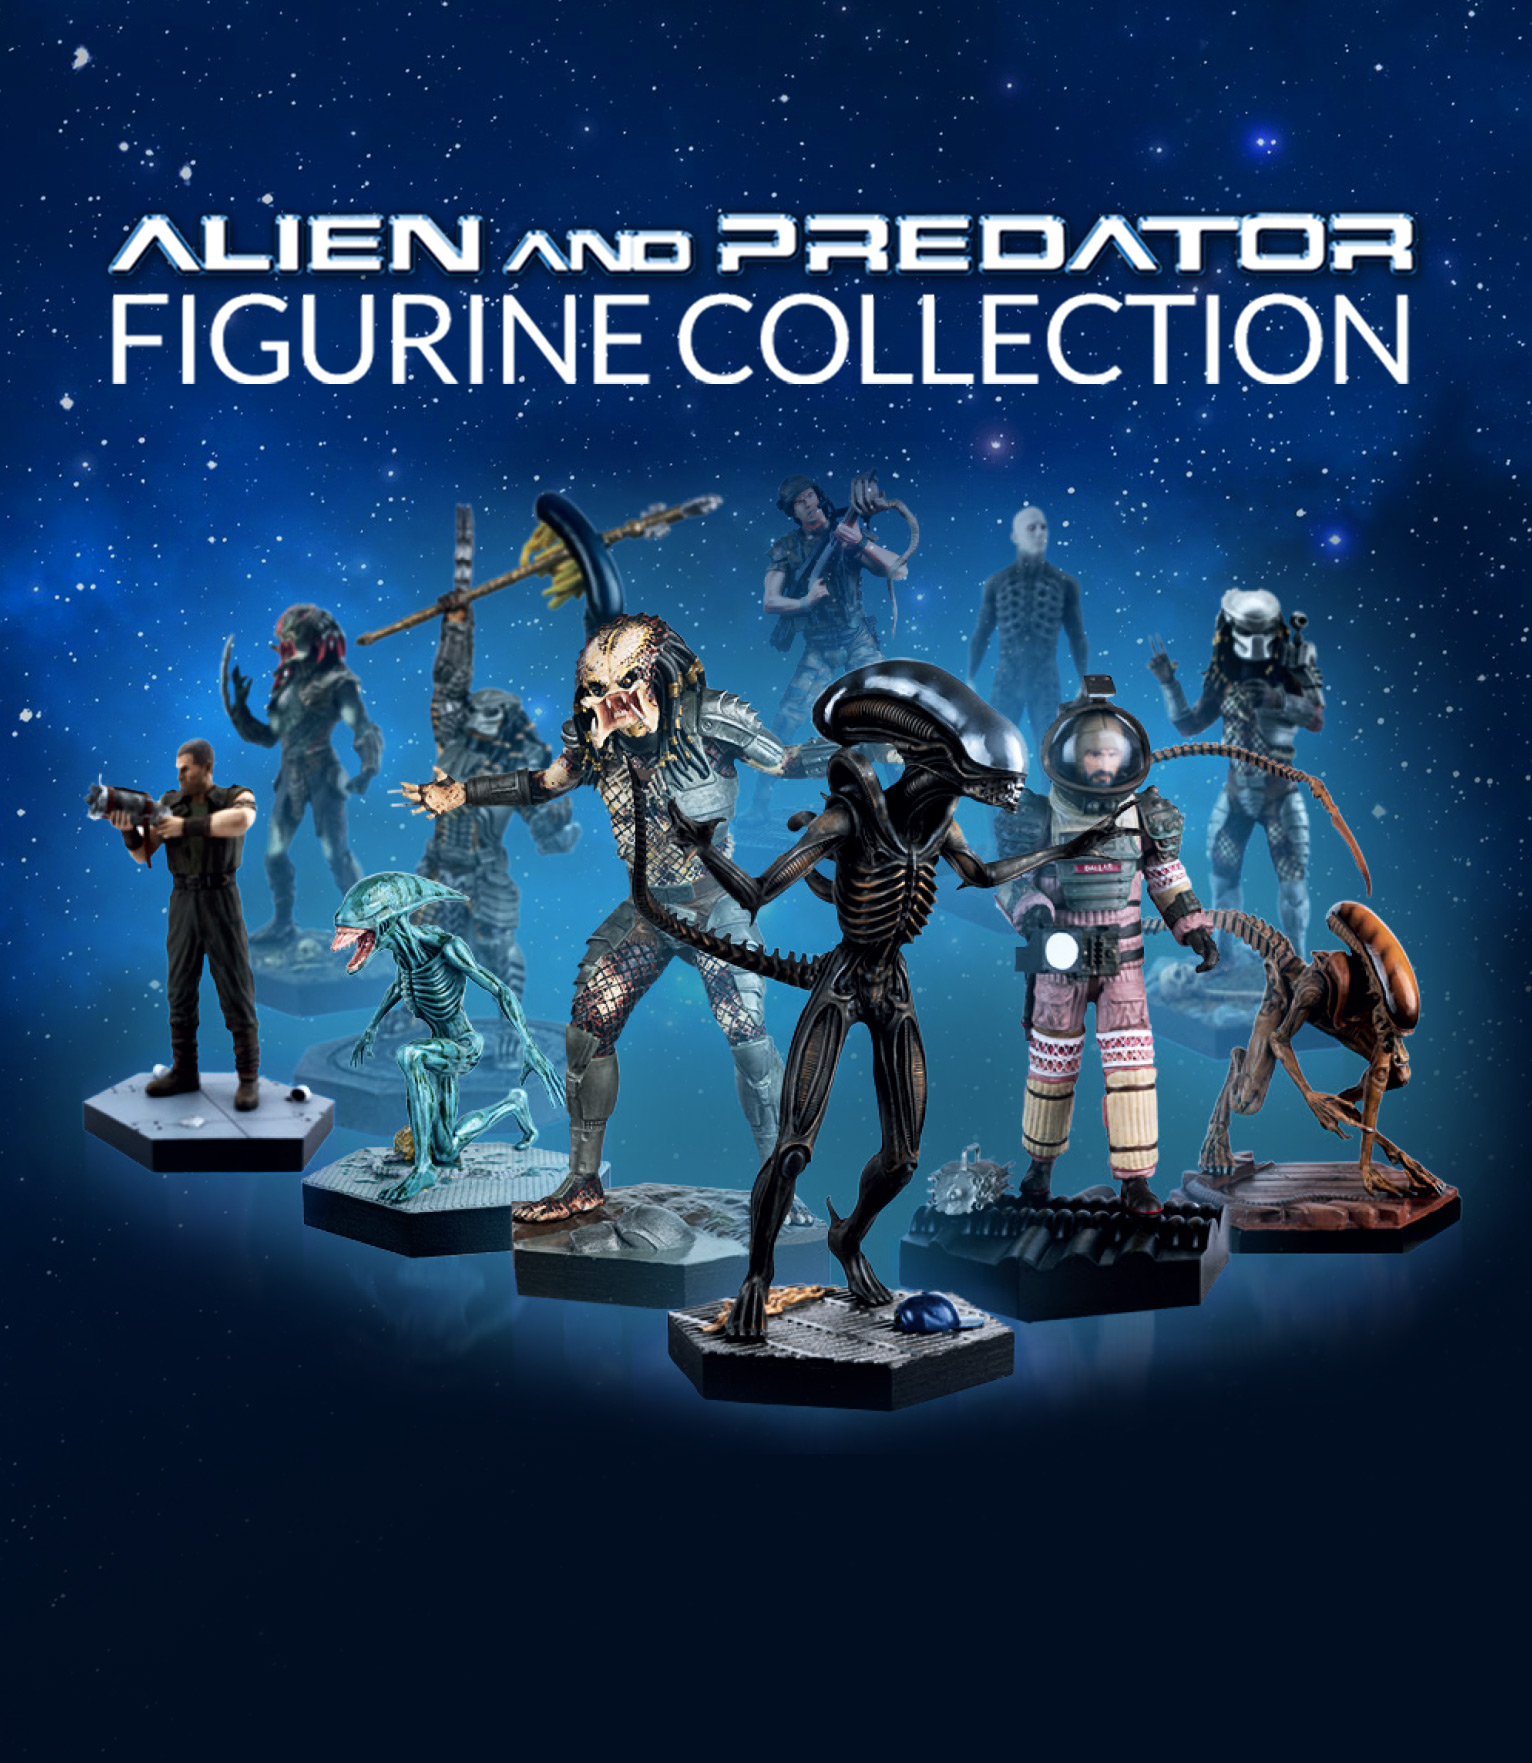 Alien and Predator Figurine Collection